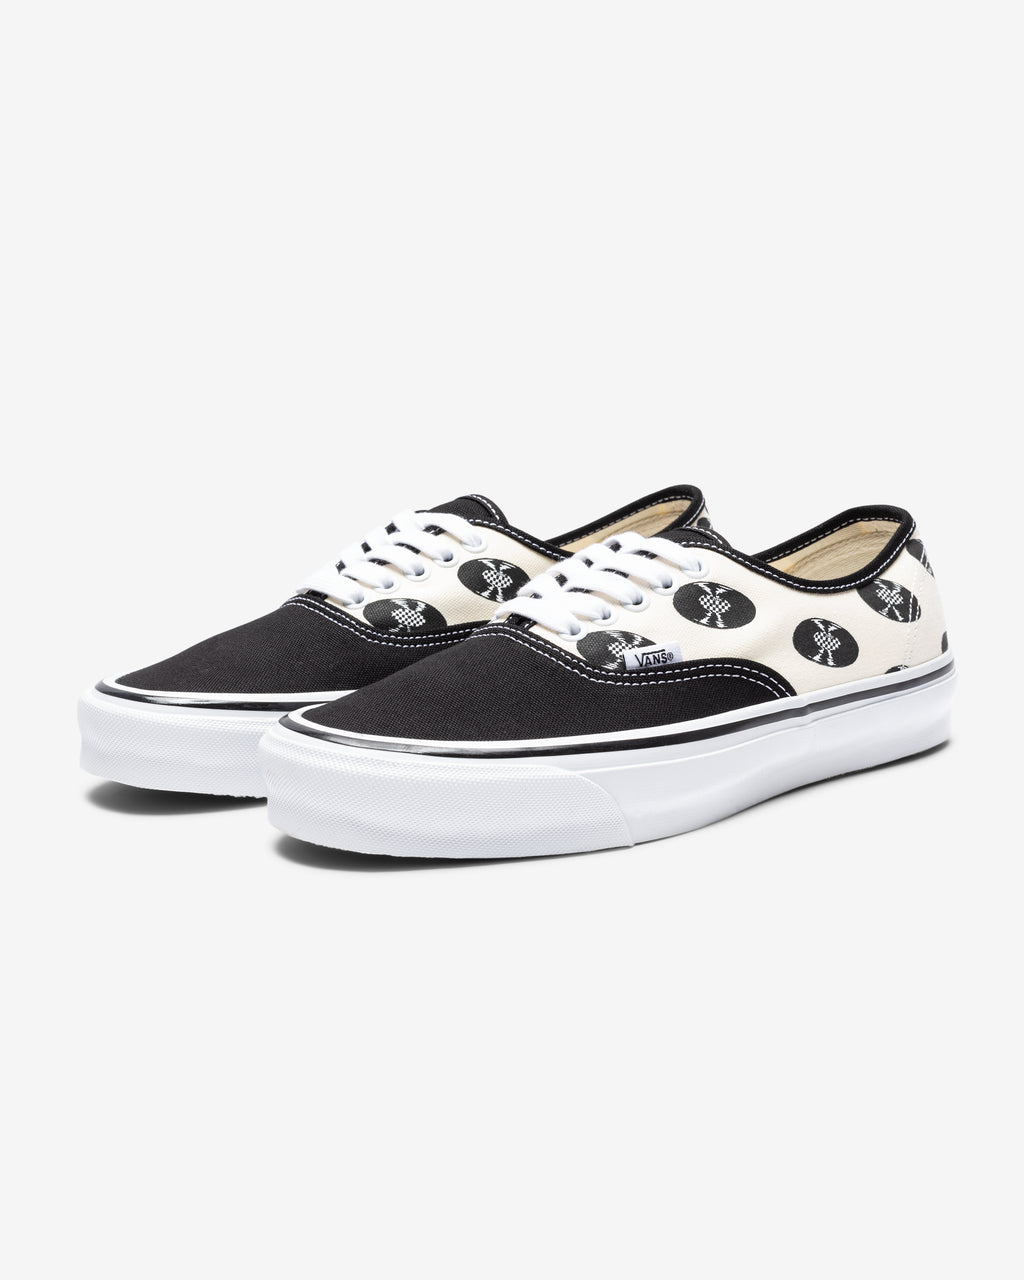 VANS X WACKO MARIA OG AUTHENTIC LX - CLS